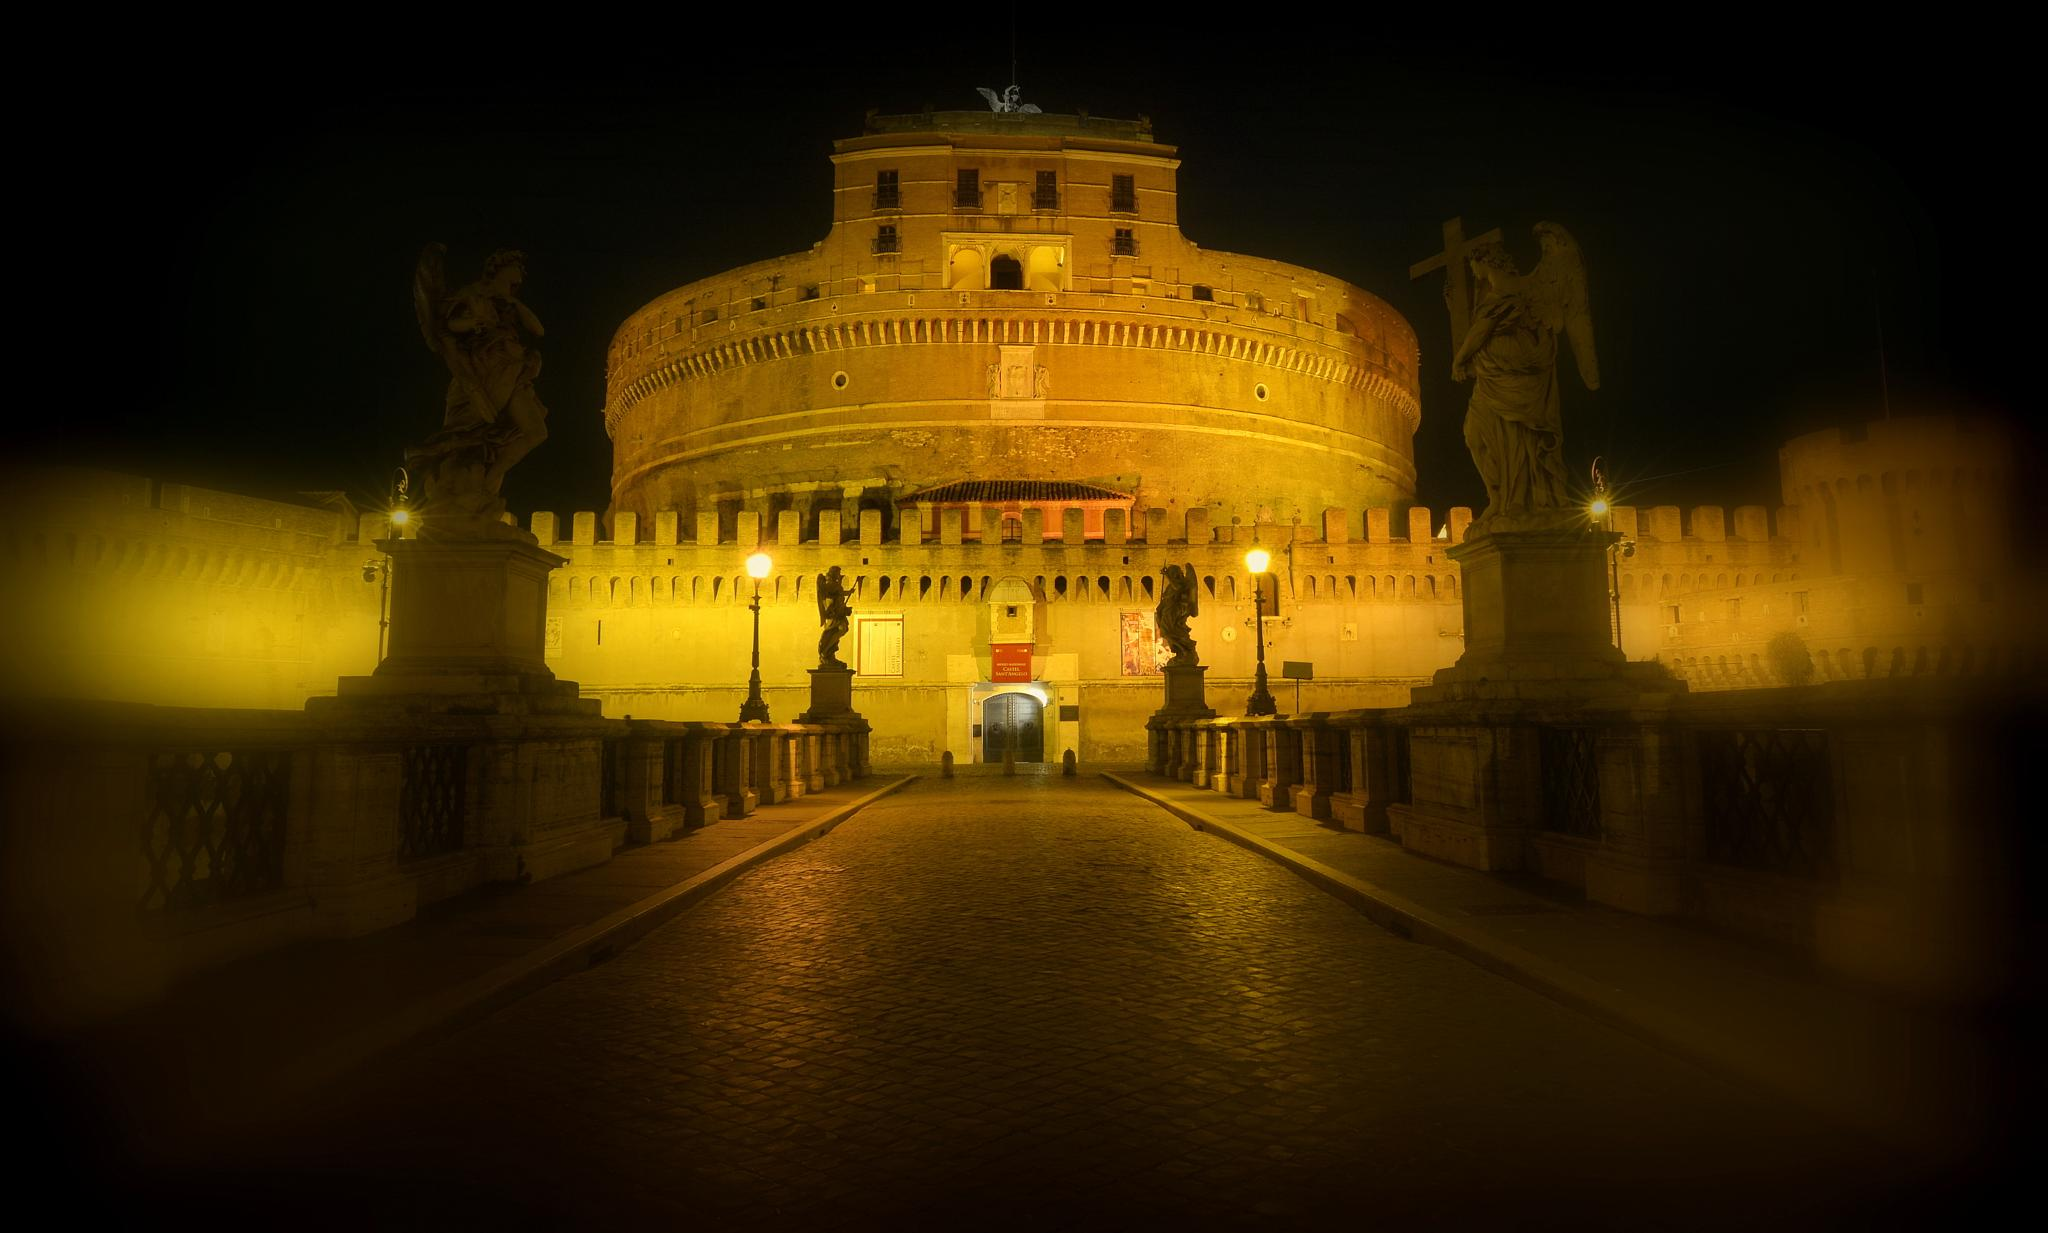 roma ,castel sant'angelo by sildemo